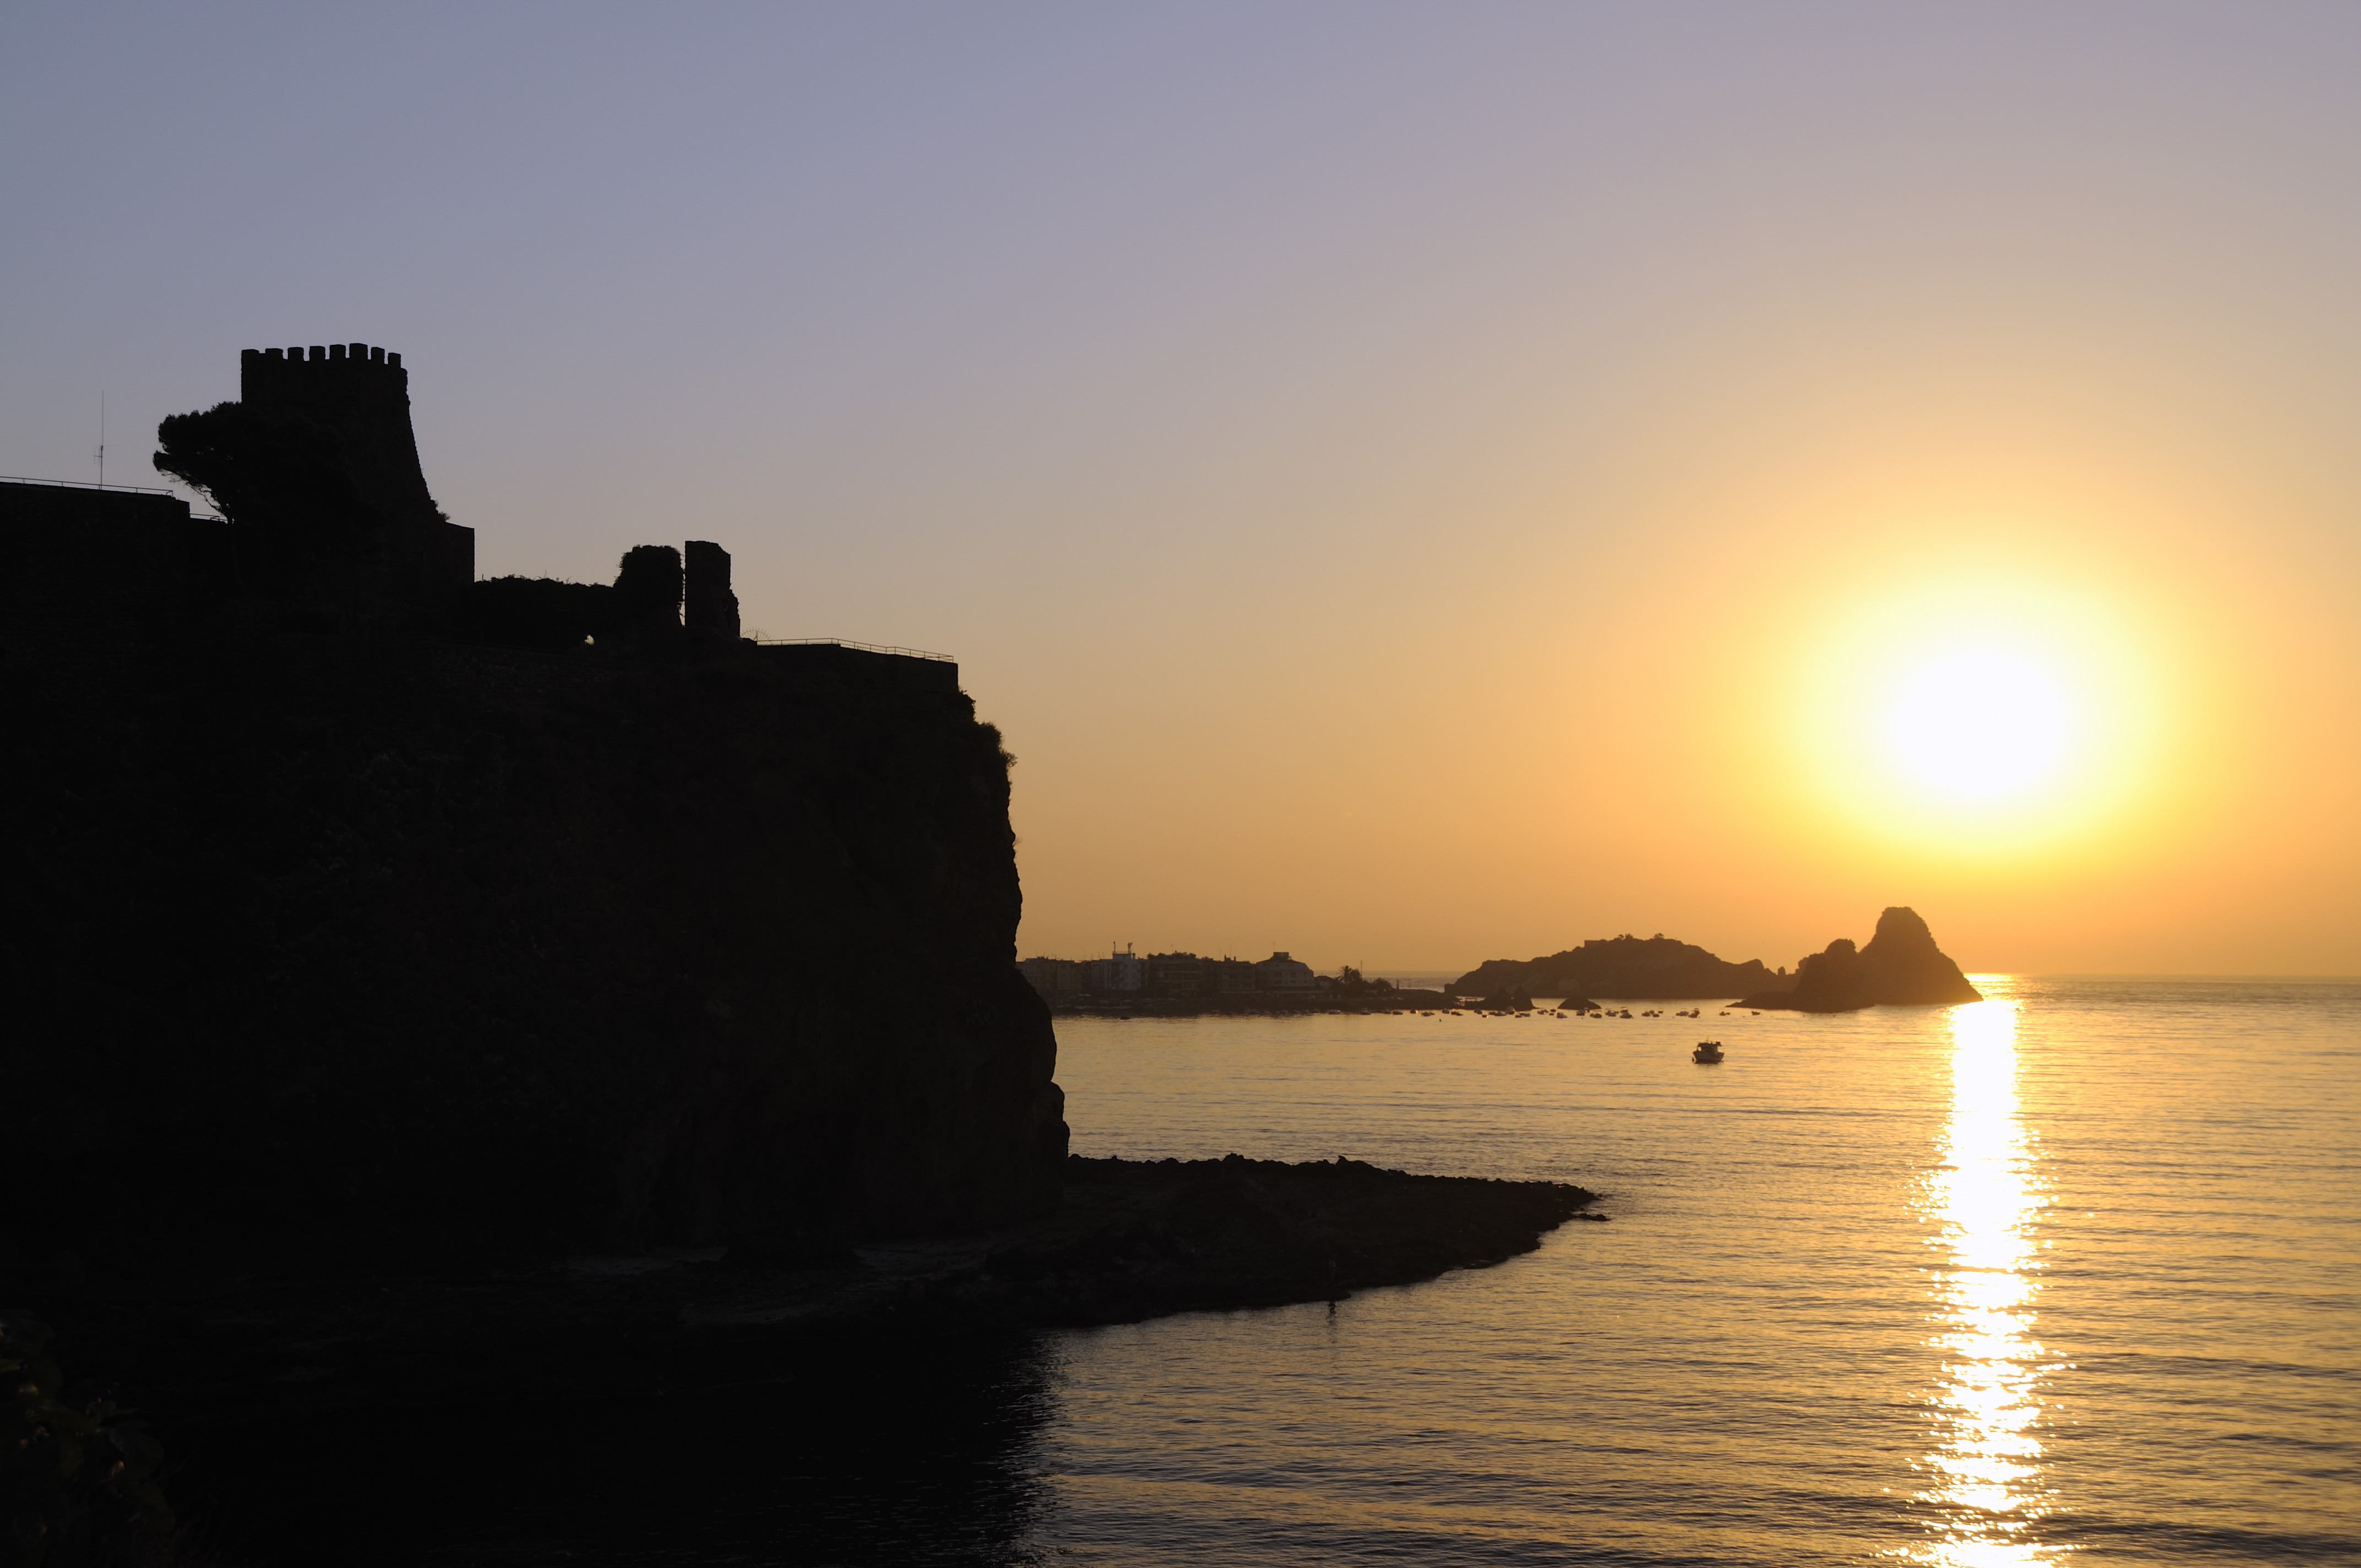 Aci castello sicily italy - creative commons by gnuckx photo